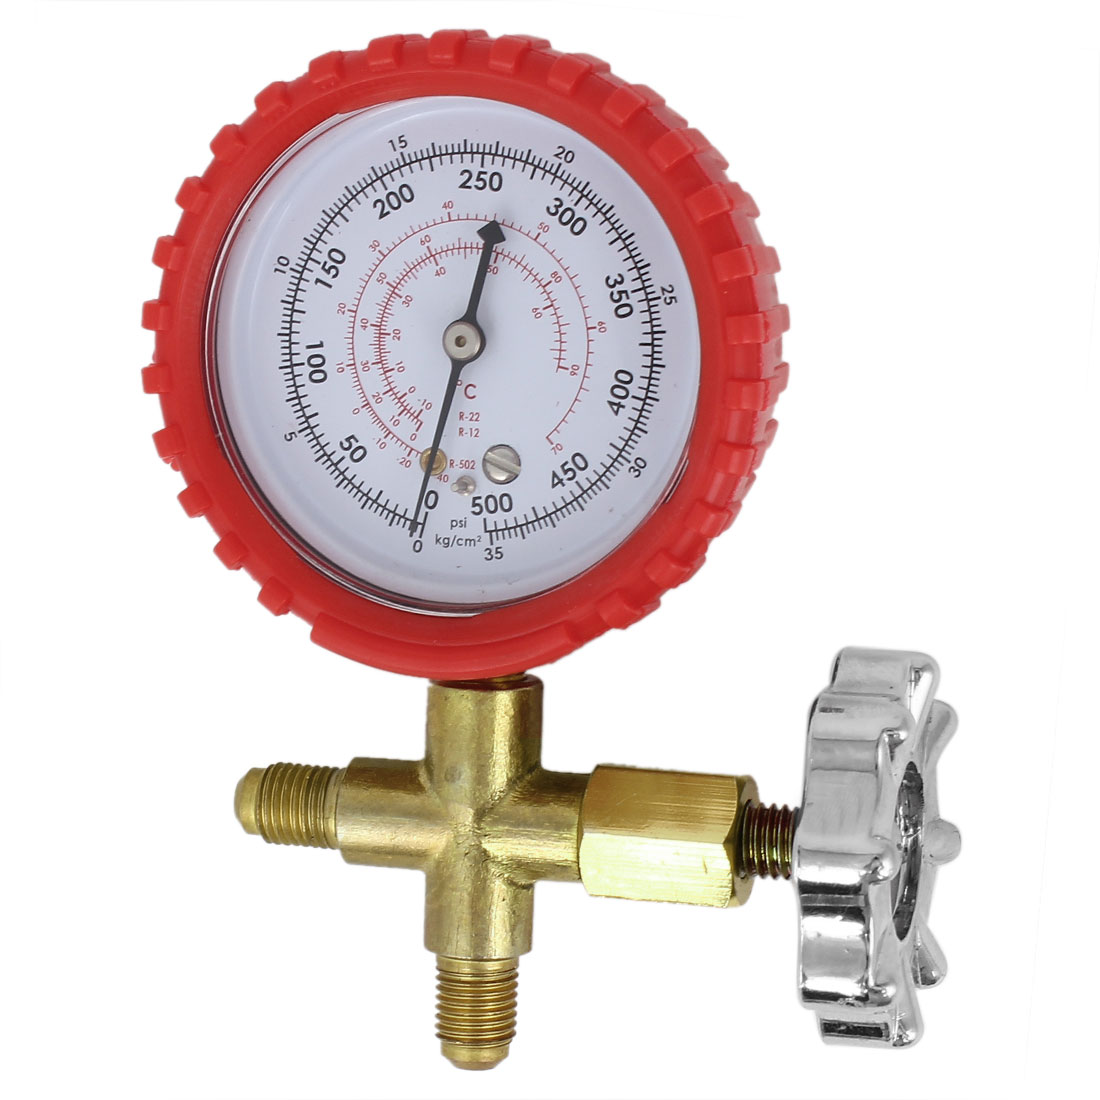 11mm Male Threaded 2 Way Valve Single Manifold Gauge 500psi Replacement